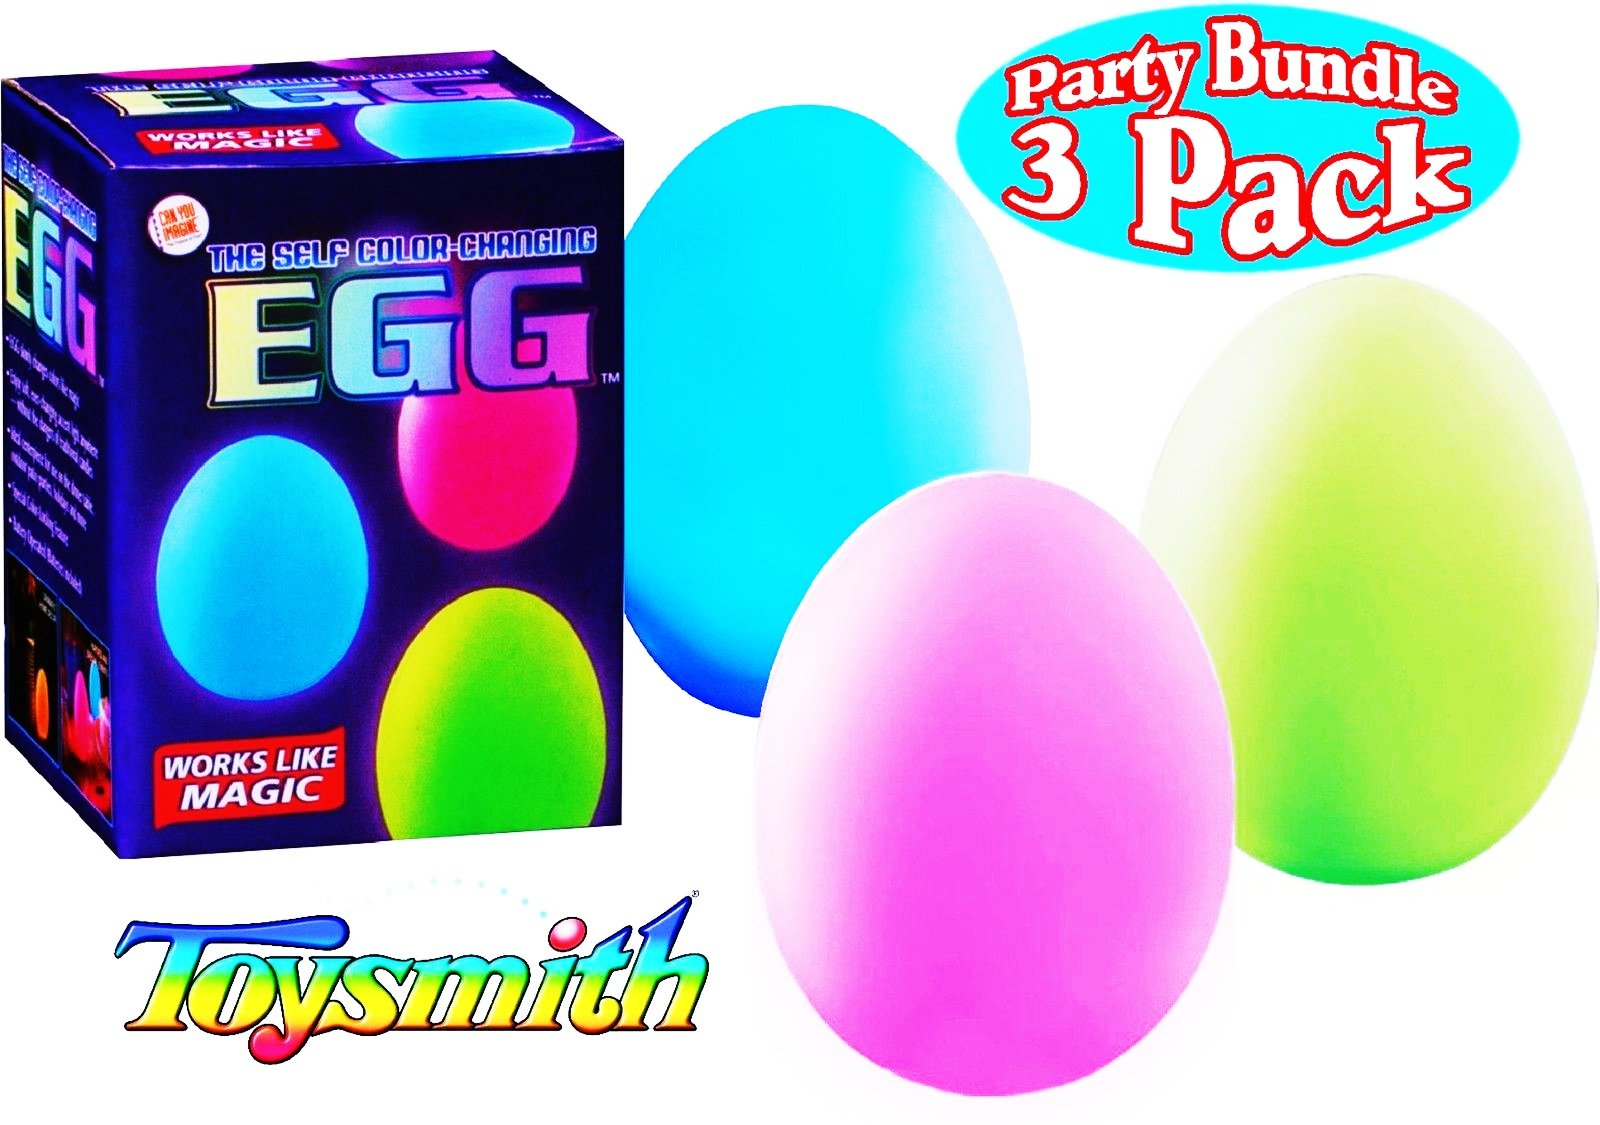 Can You Imagine Self Color Changing Eggs Party Bundle - 3 Pack For Ages 5+